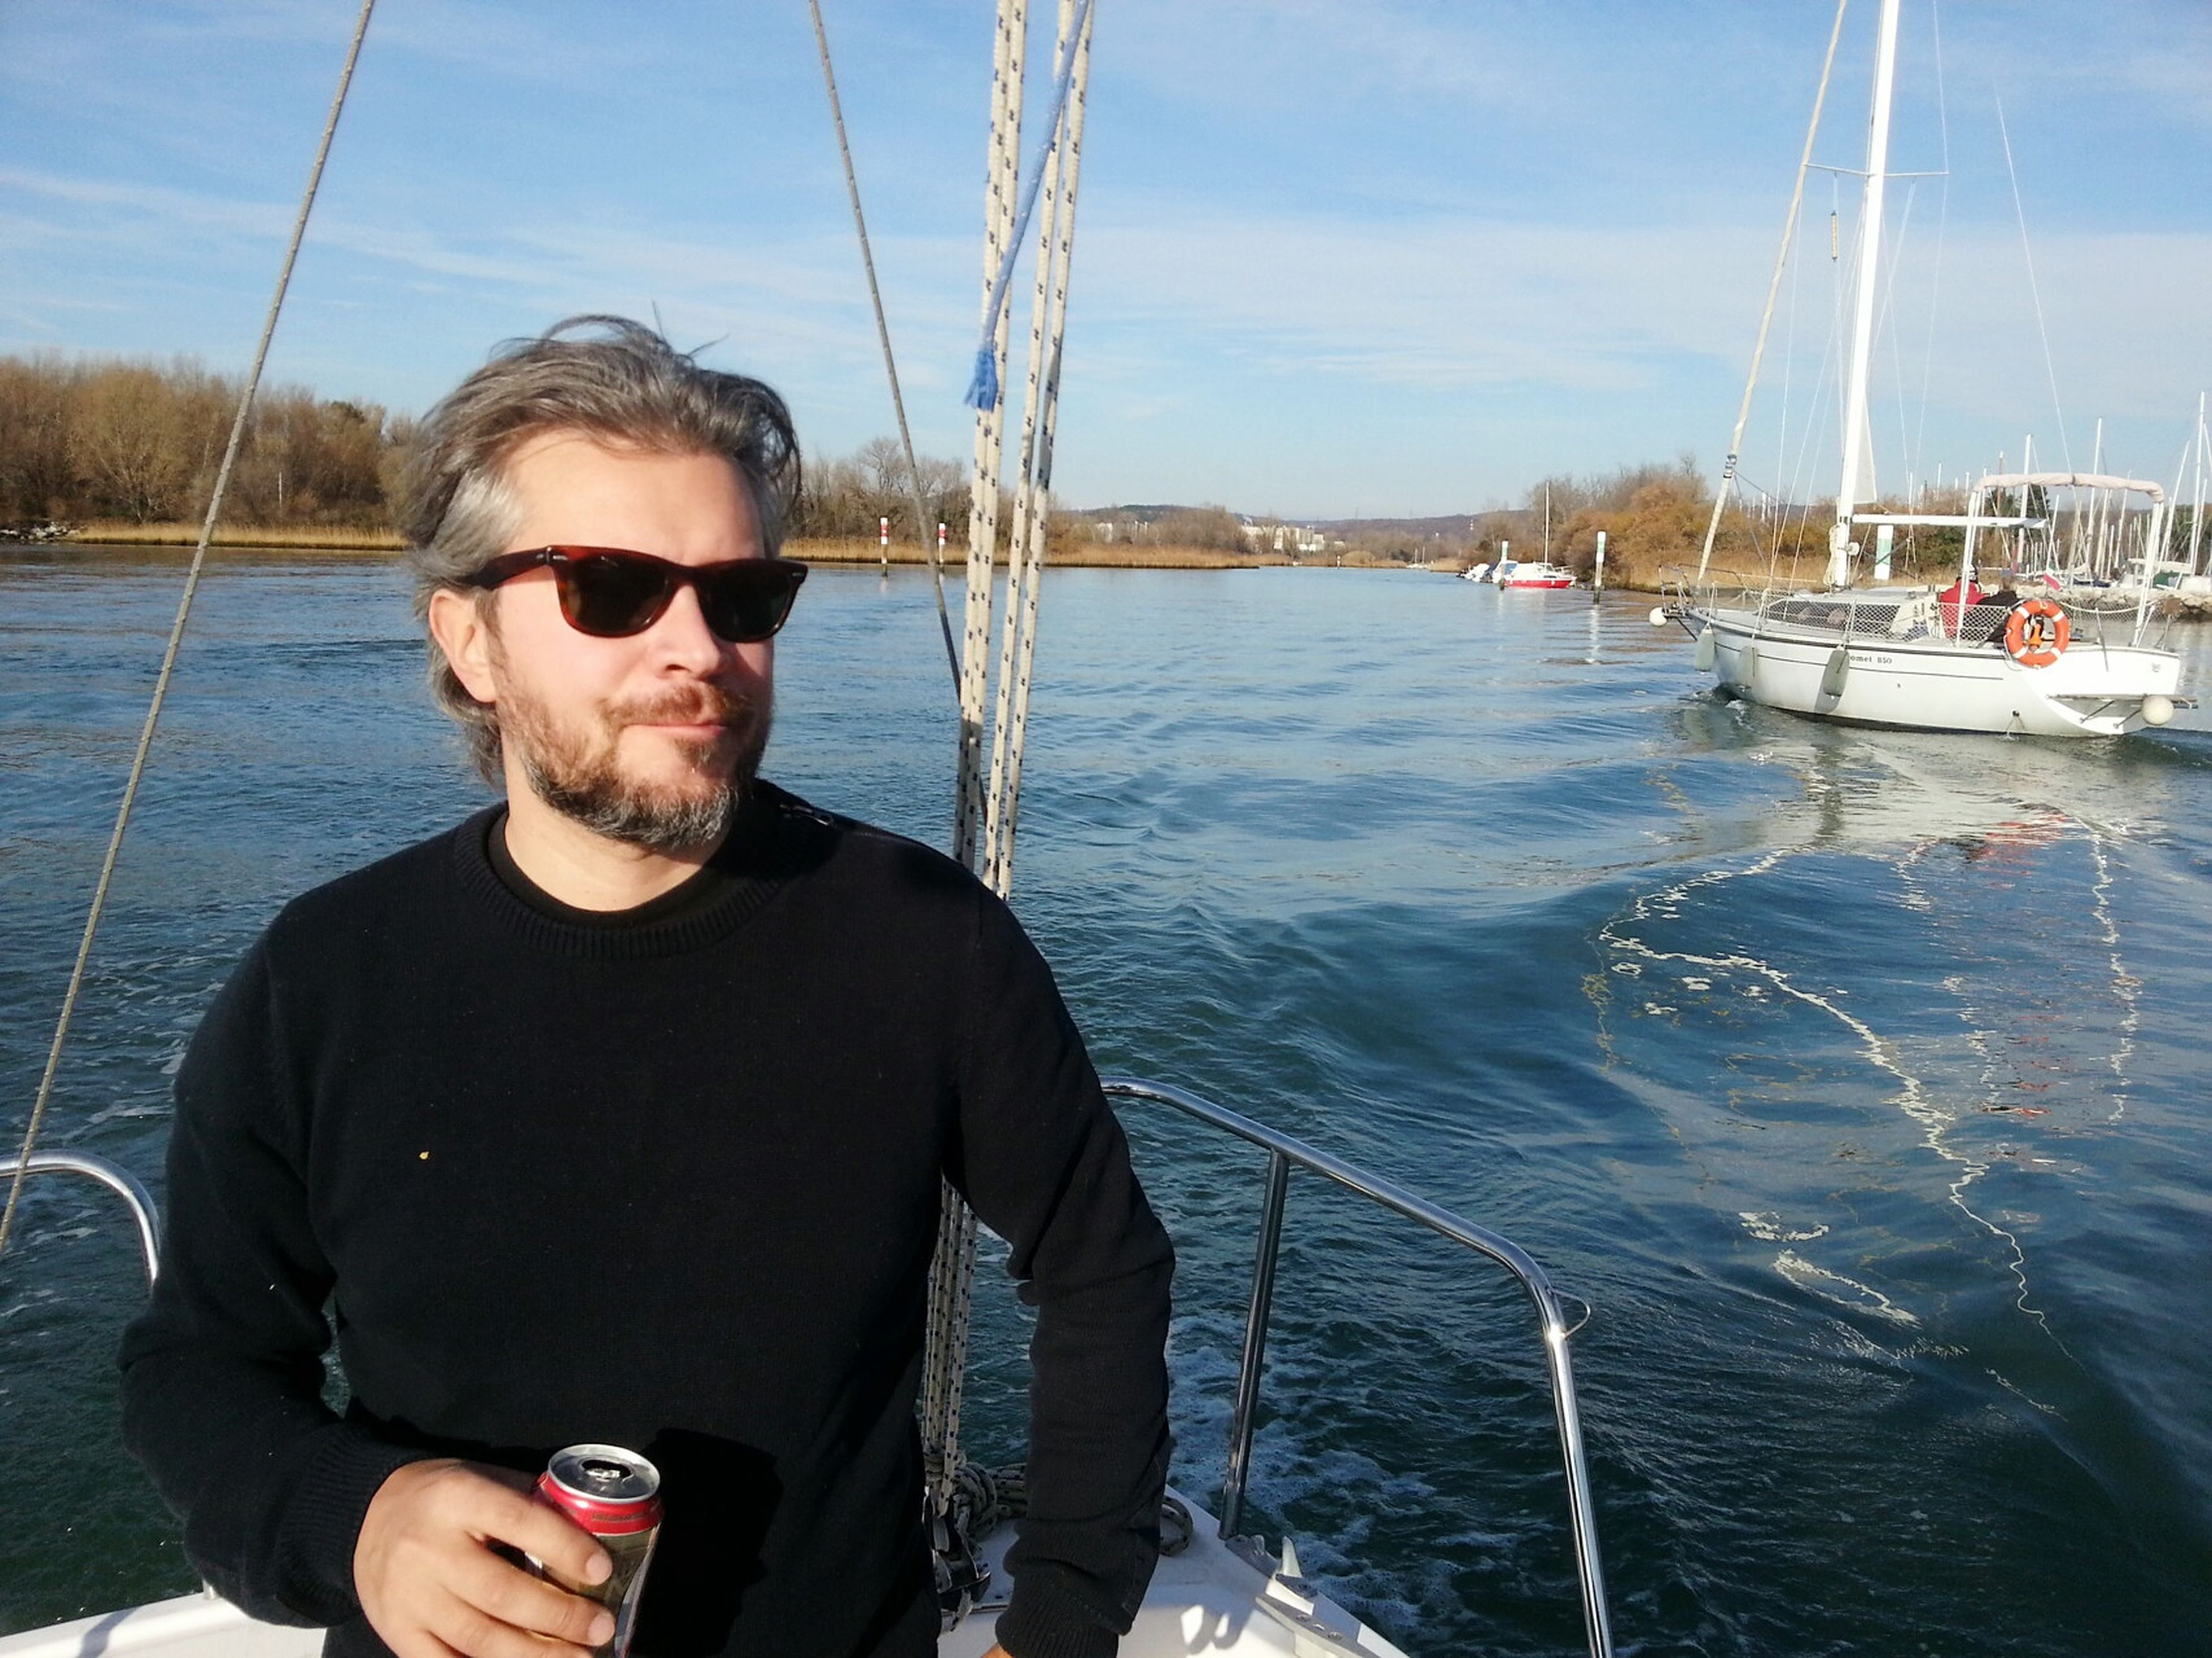 water, lifestyles, leisure activity, person, looking at camera, nautical vessel, transportation, portrait, young adult, mode of transport, casual clothing, young men, sky, front view, sunglasses, boat, smiling, day